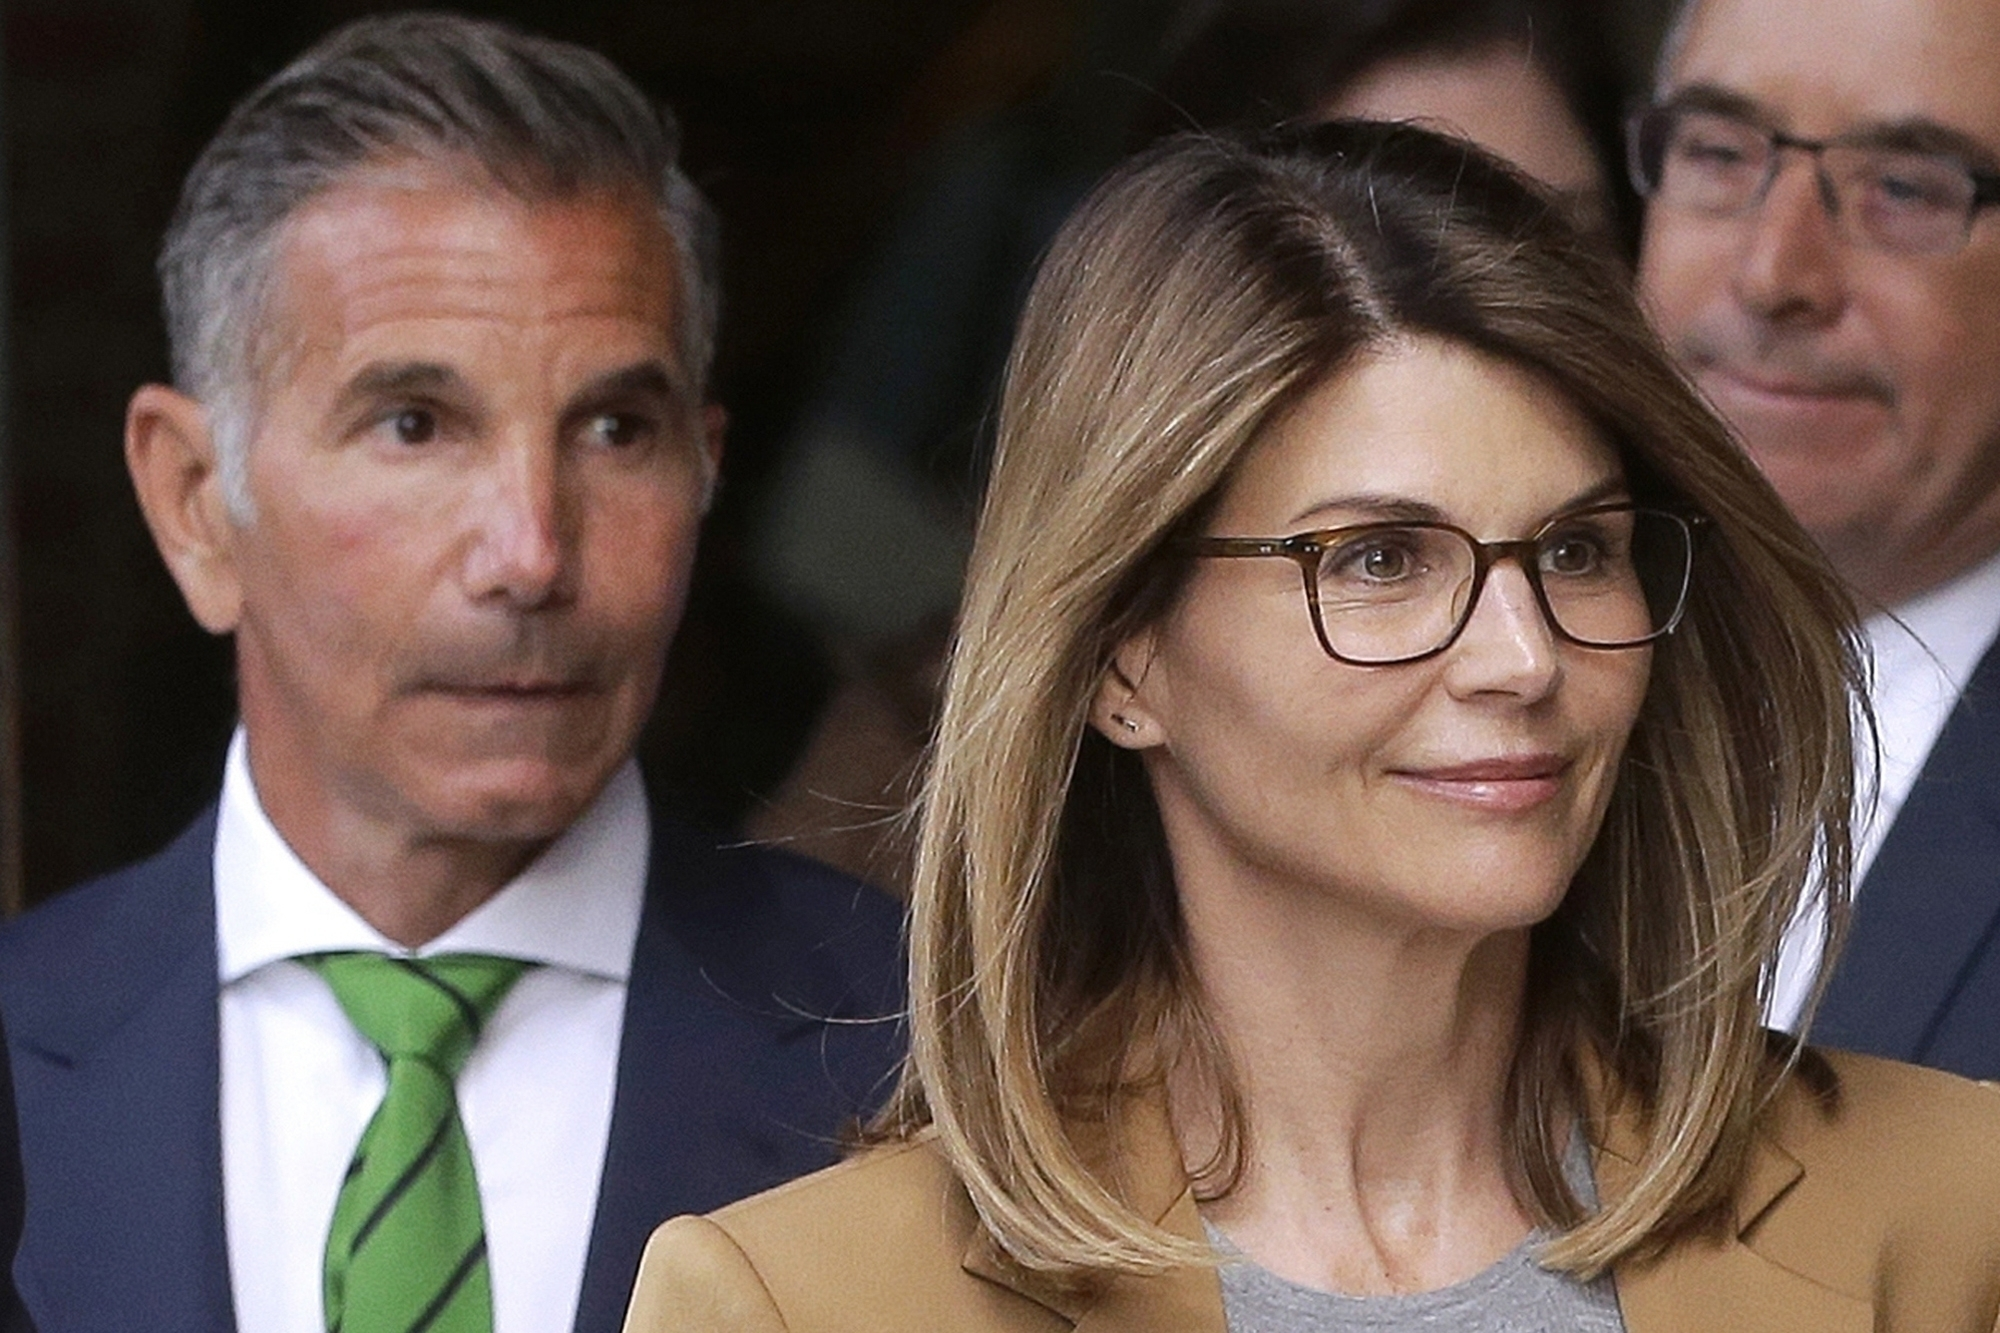 Lori Loughlin,Mossimo Giannulli